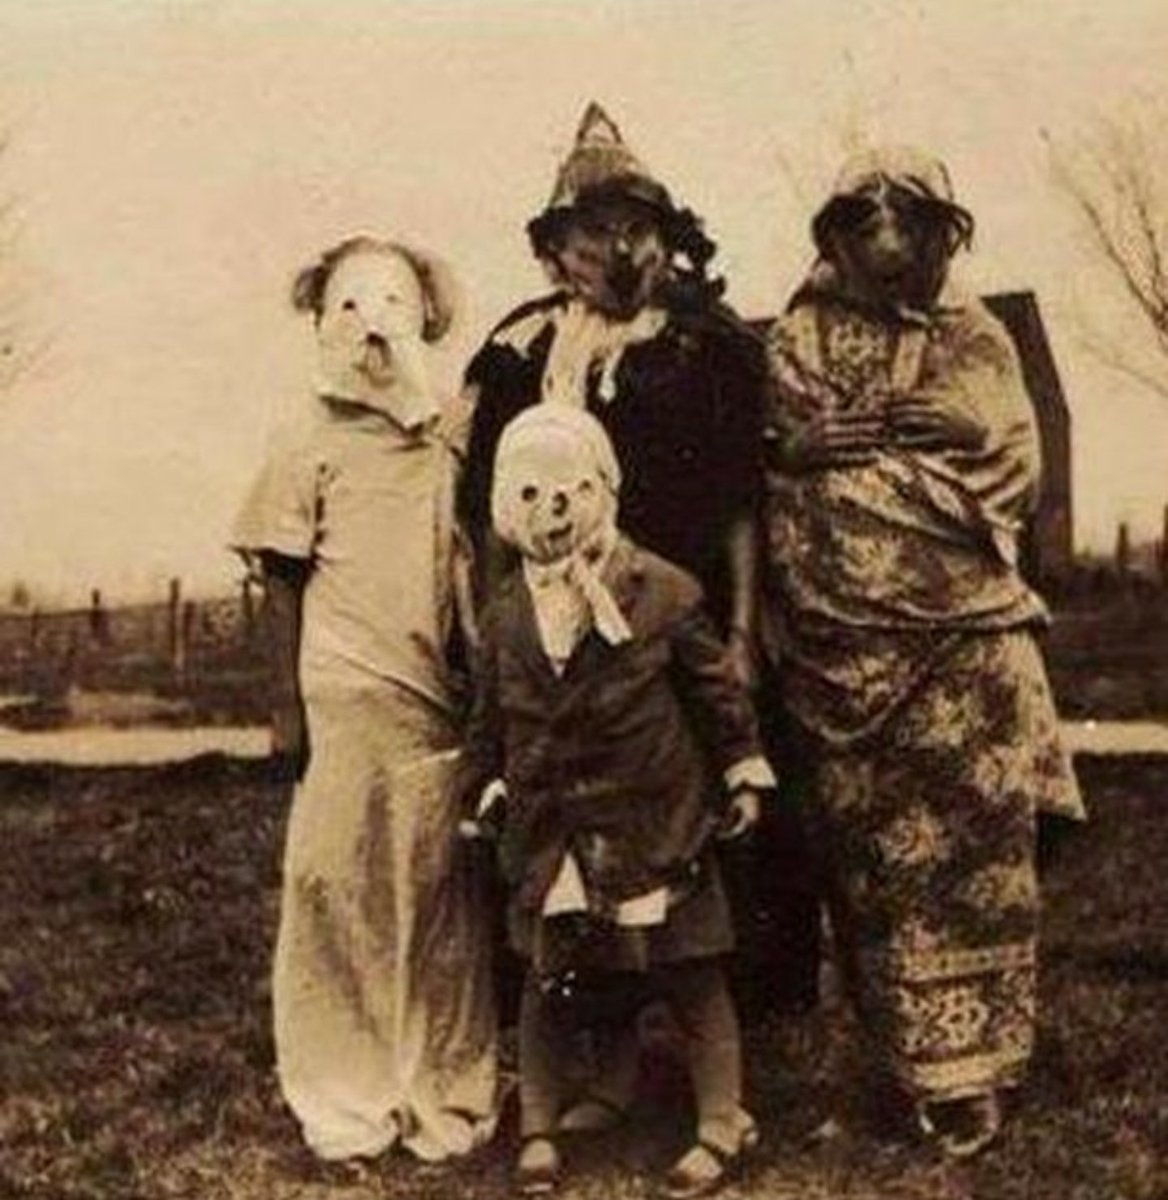 stilez on twitter the halloween costumes back in the early 1900s were terrifying